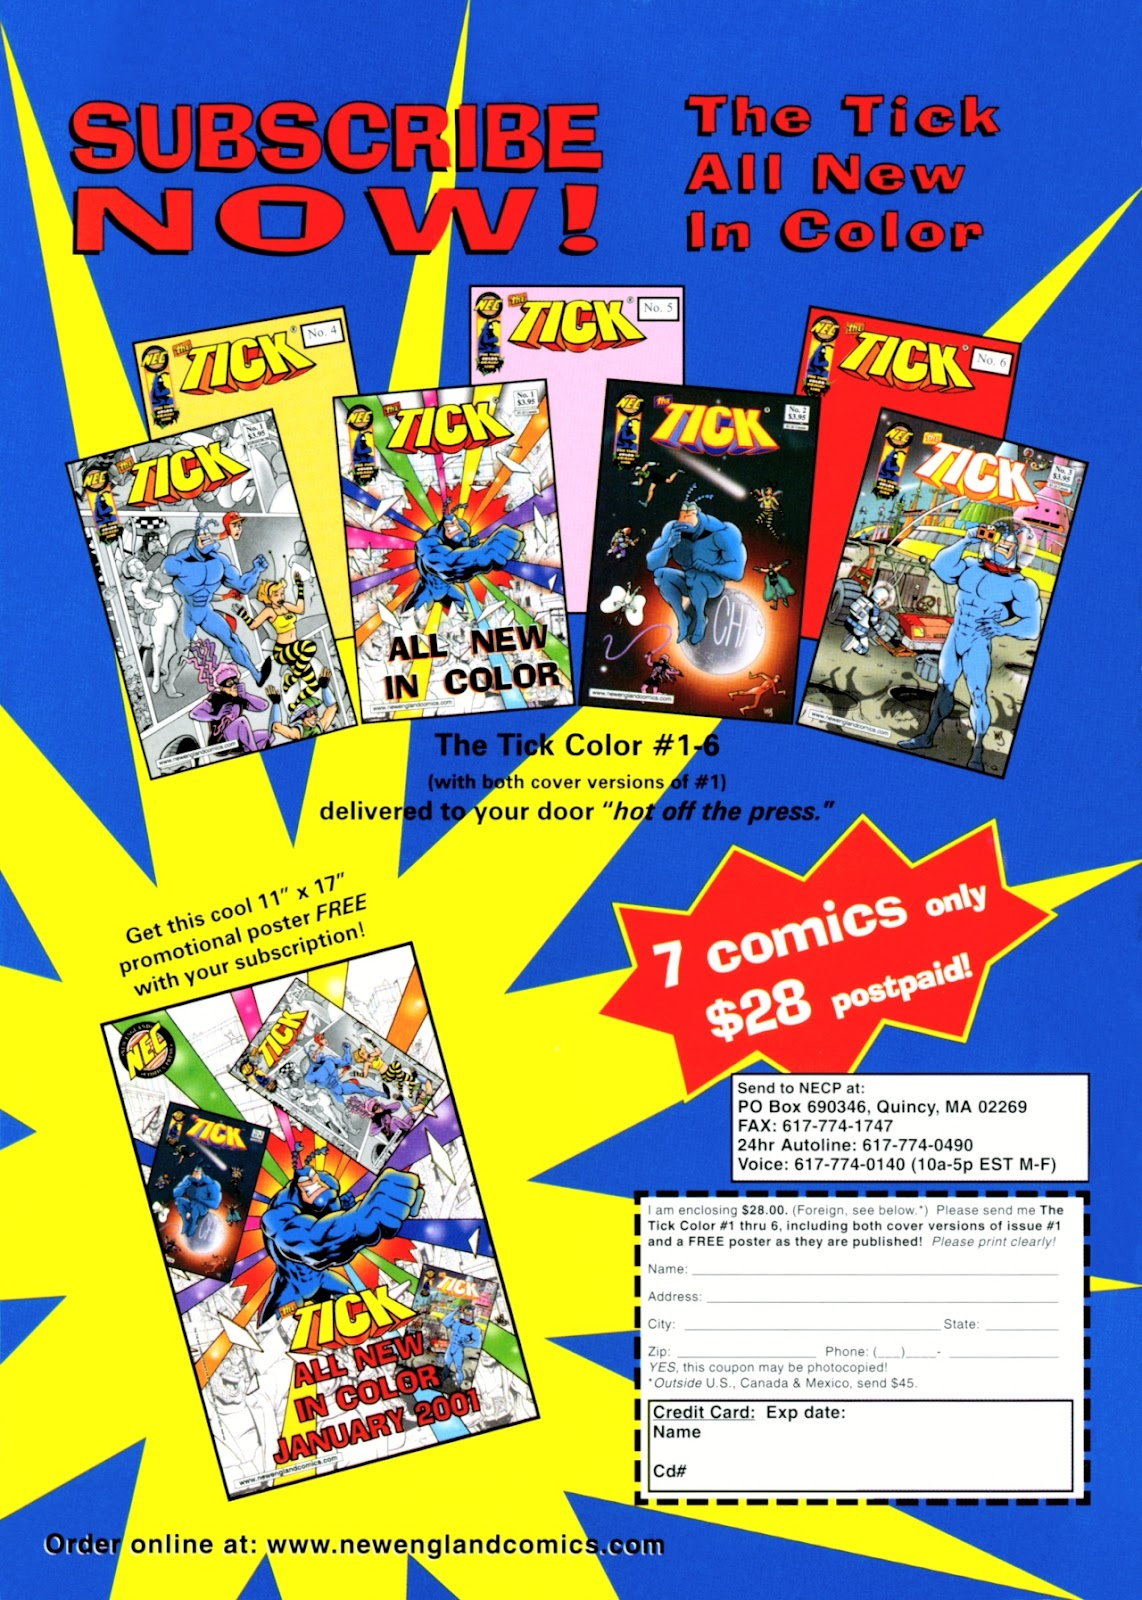 Read online The Tick comic -  Issue #13 - 36